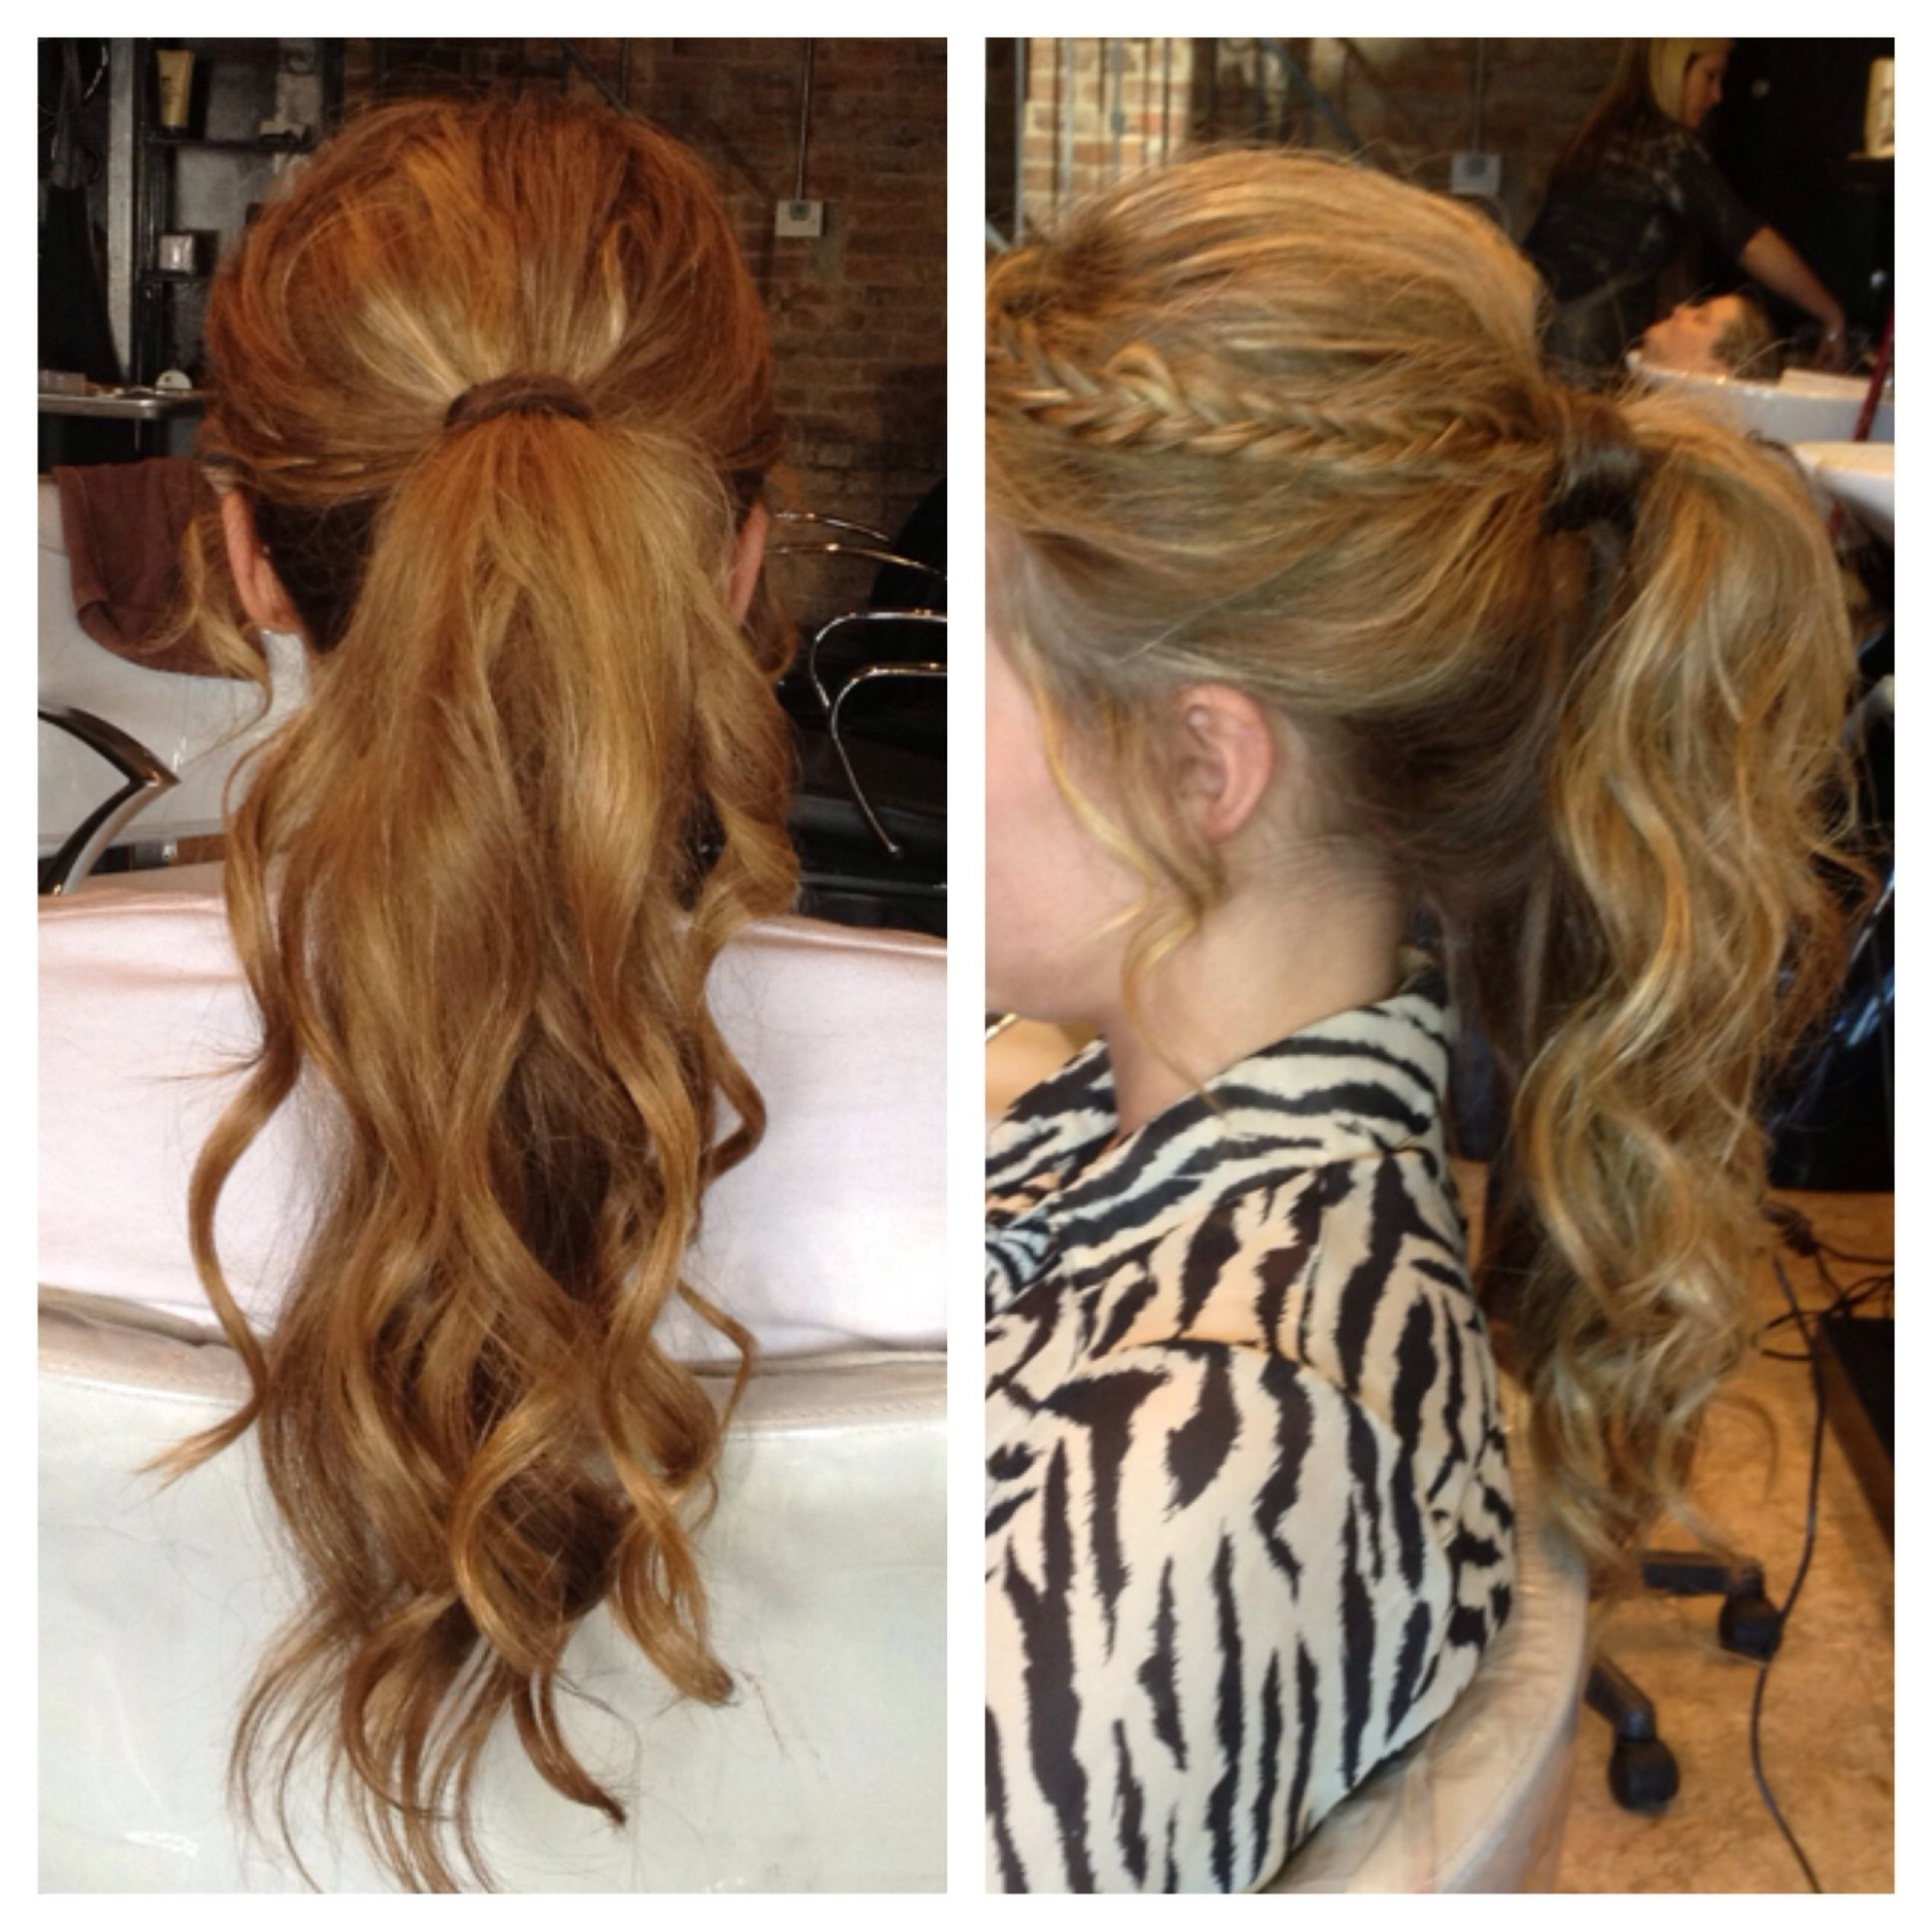 Most Current Brunette Ponytail Hairstyles With Braided Bangs Pertaining To Homecoming / Prom Hairstyle – Curly Ponytail With Bangs Braided (View 2 of 20)